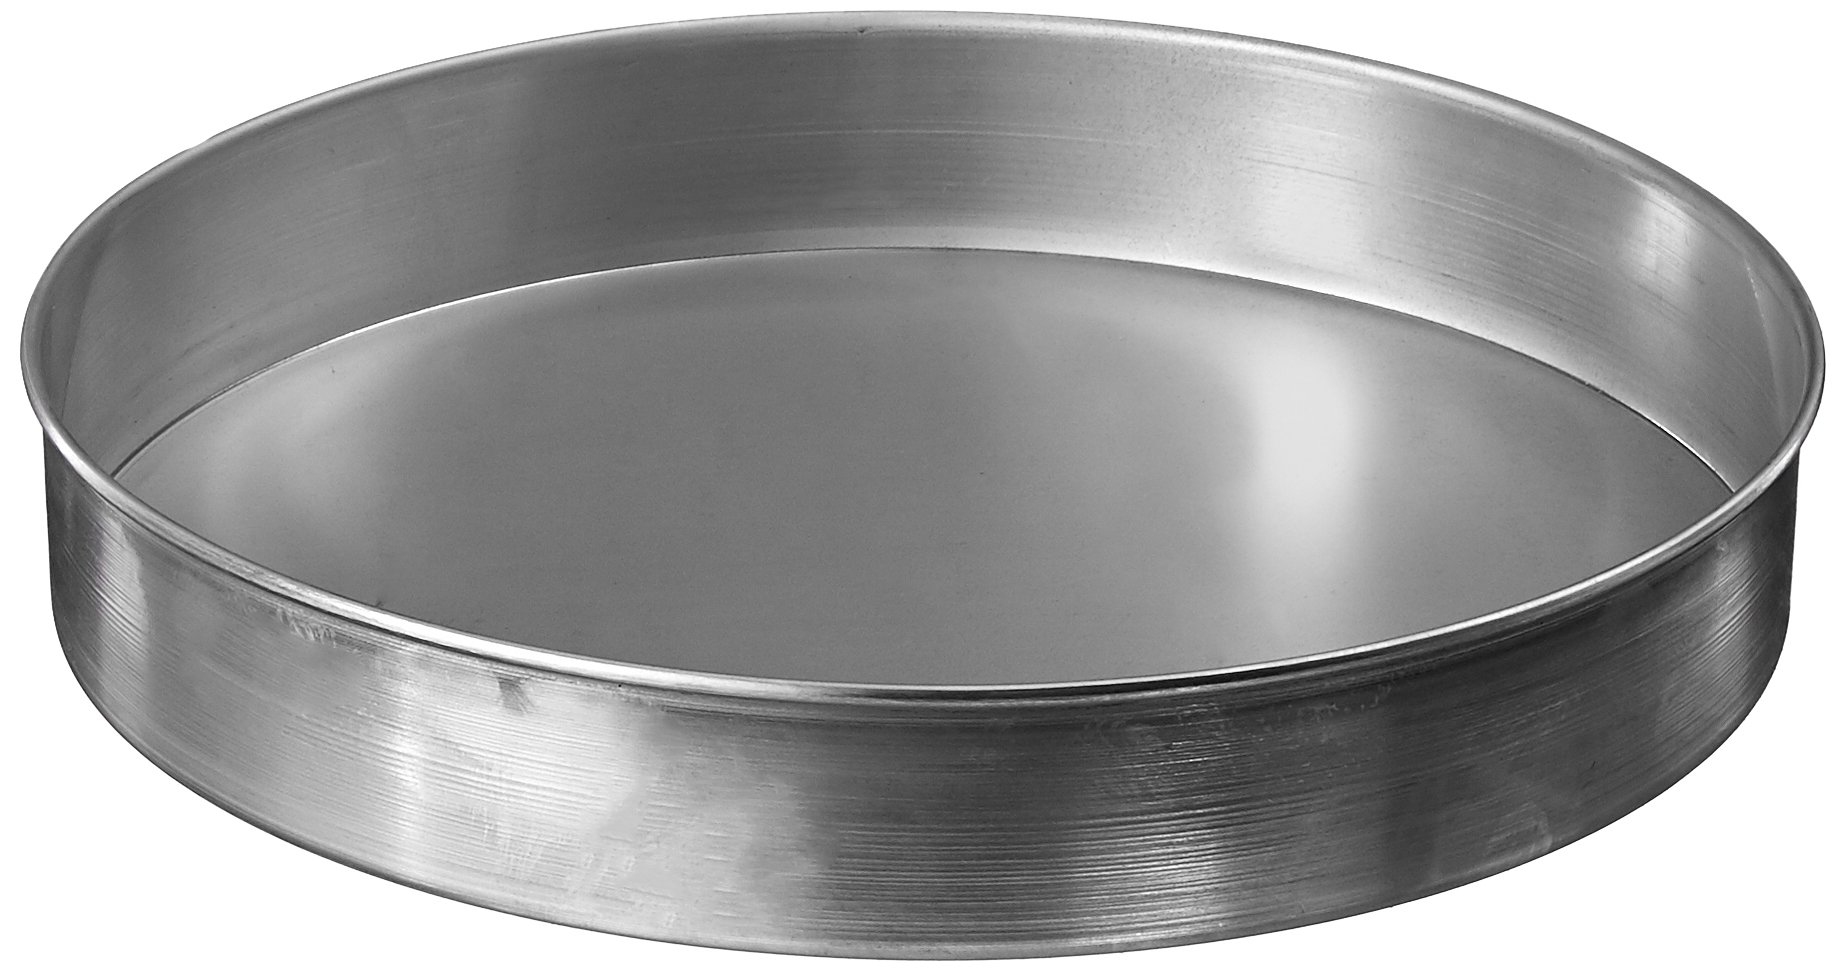 American Metalcraft T80122 Pizza Pans, 12.35'' Length x 12.3'' Width, Silver by American Metalcraft (Image #1)